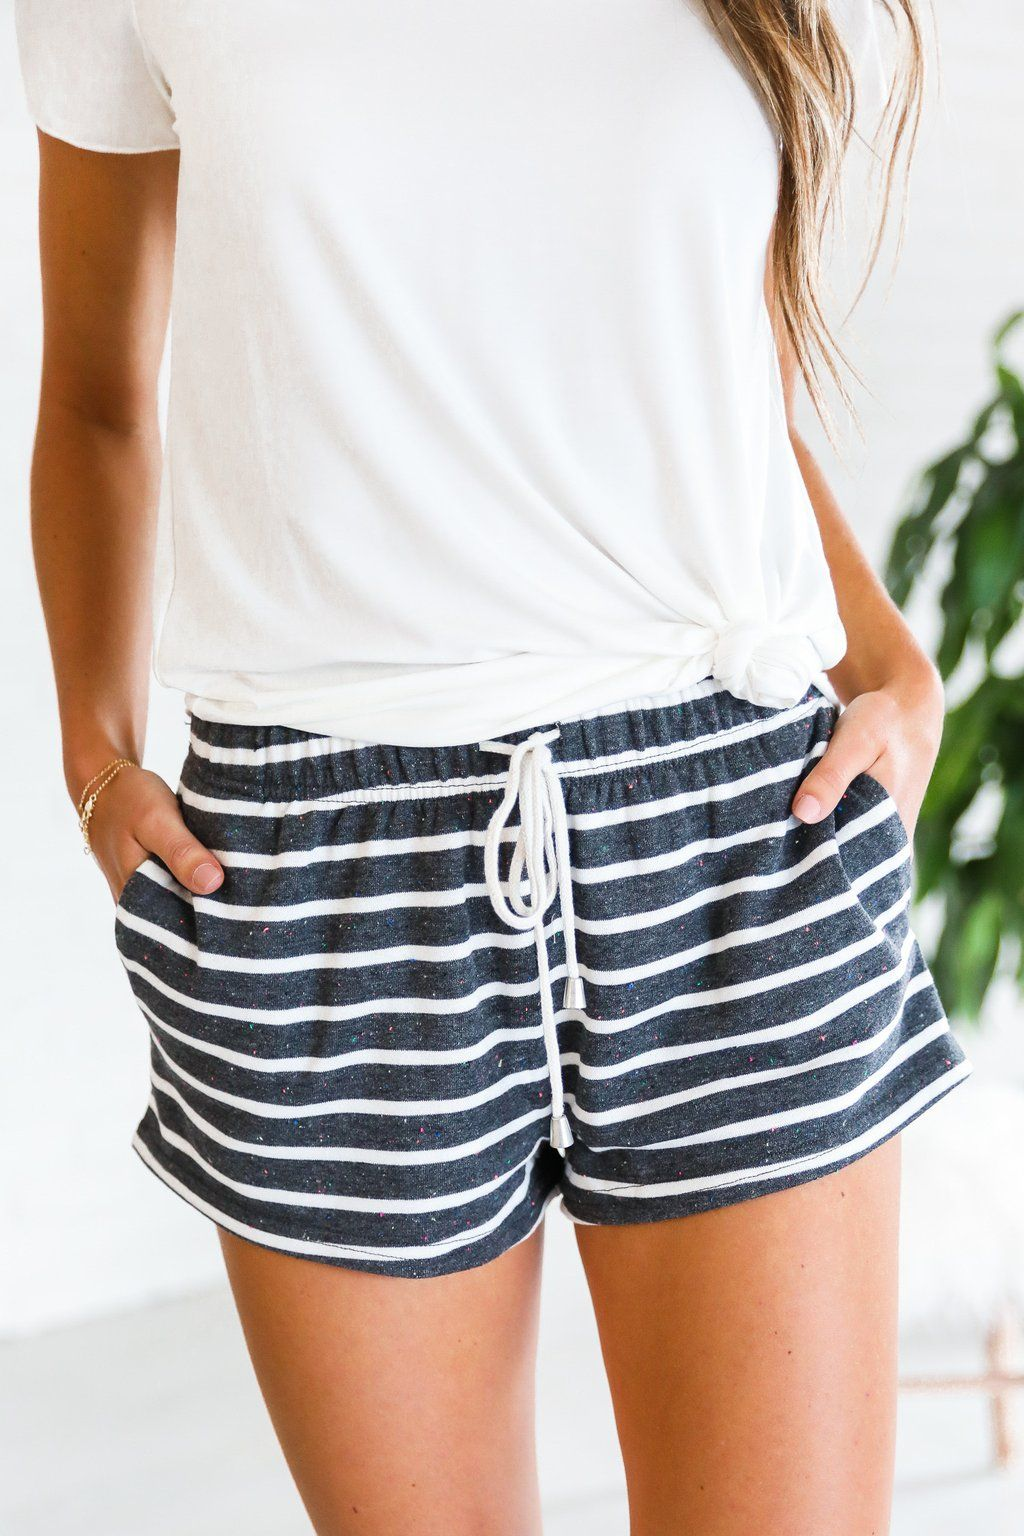 Cape Cod Clothes Part - 36: Cape Cod Striped Shorts